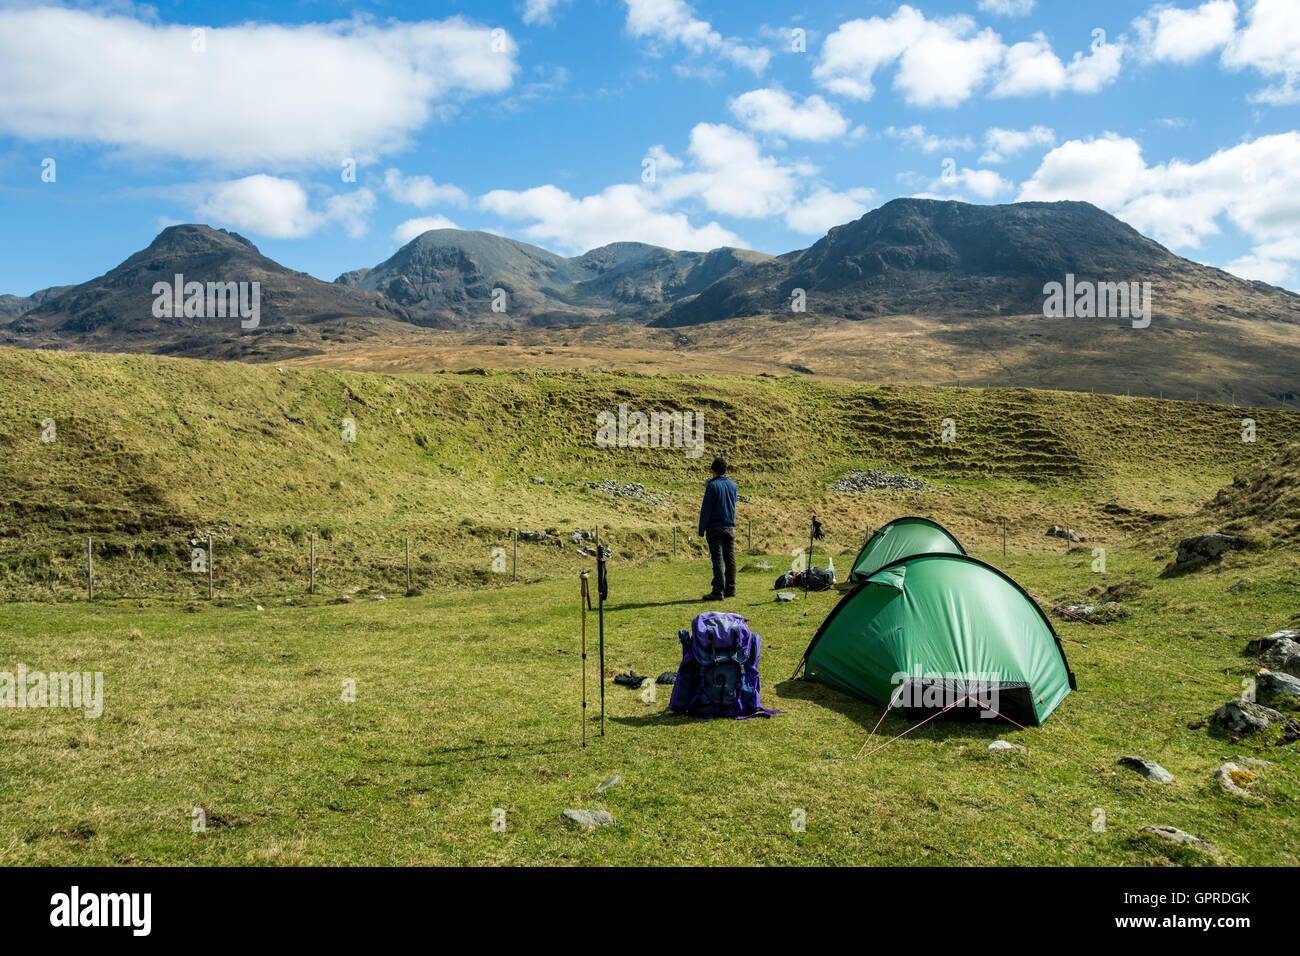 Two Hilleberg Akto solo back-packing tents at Harris Bay Isle of Rum Scotland UK. The Rum Cuillin hills behind & Two Hilleberg Akto solo back-packing tents at Harris Bay Isle of ...